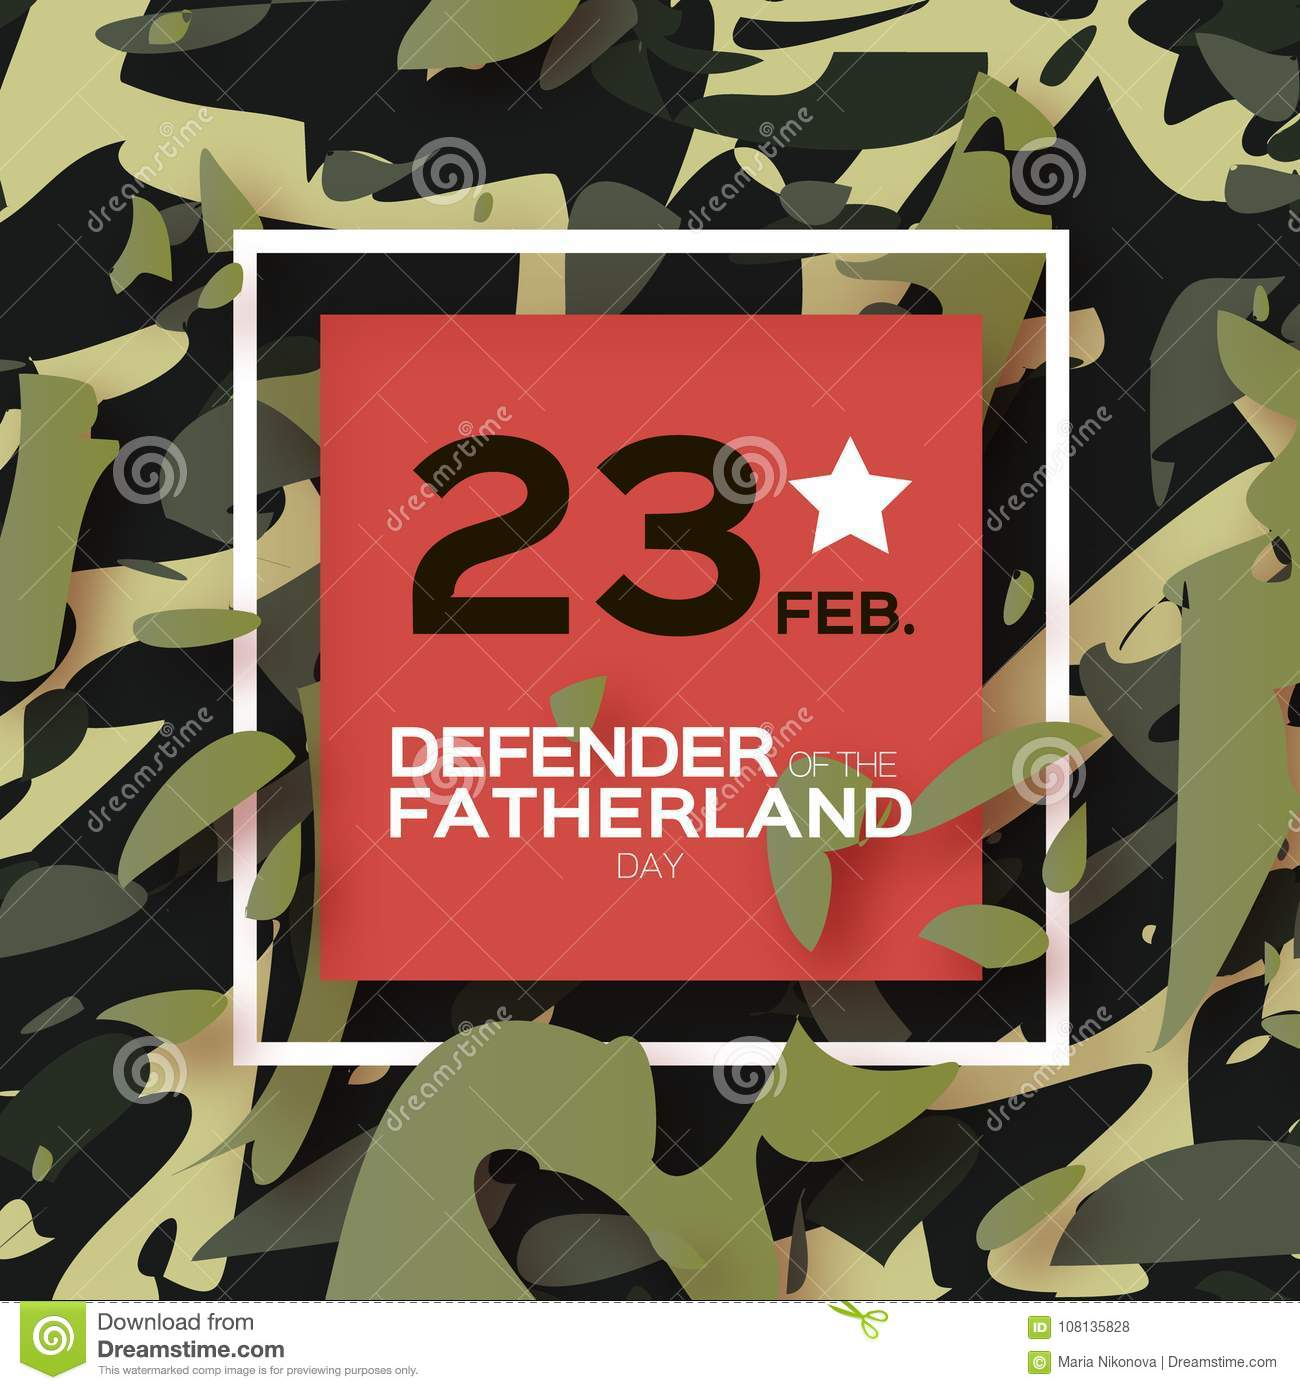 Defender Of The Fatherland Day 23 February Greeting Card For Men On